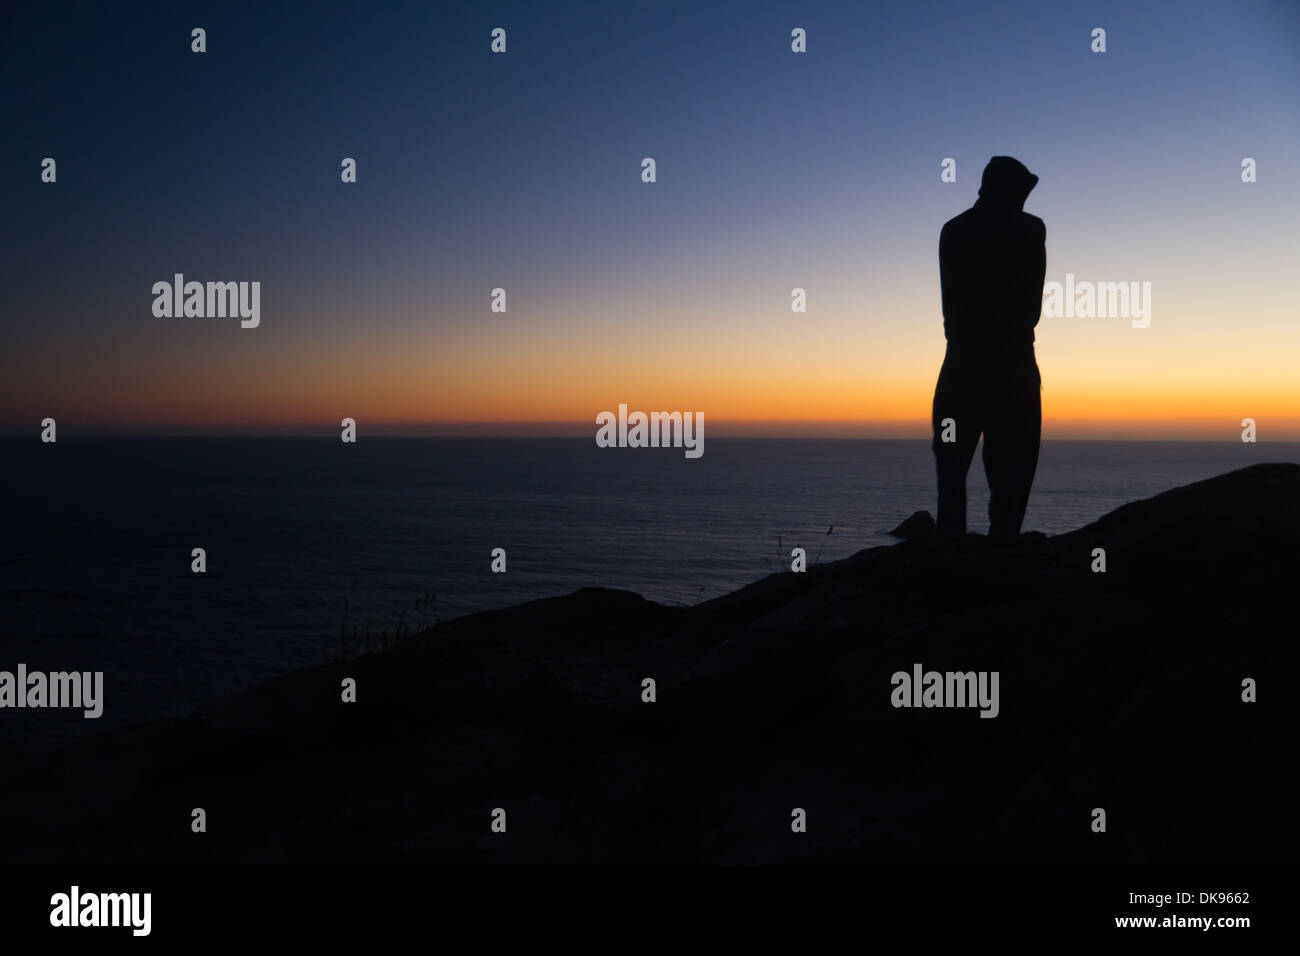 Silhouette in the darkness. - Stock Image